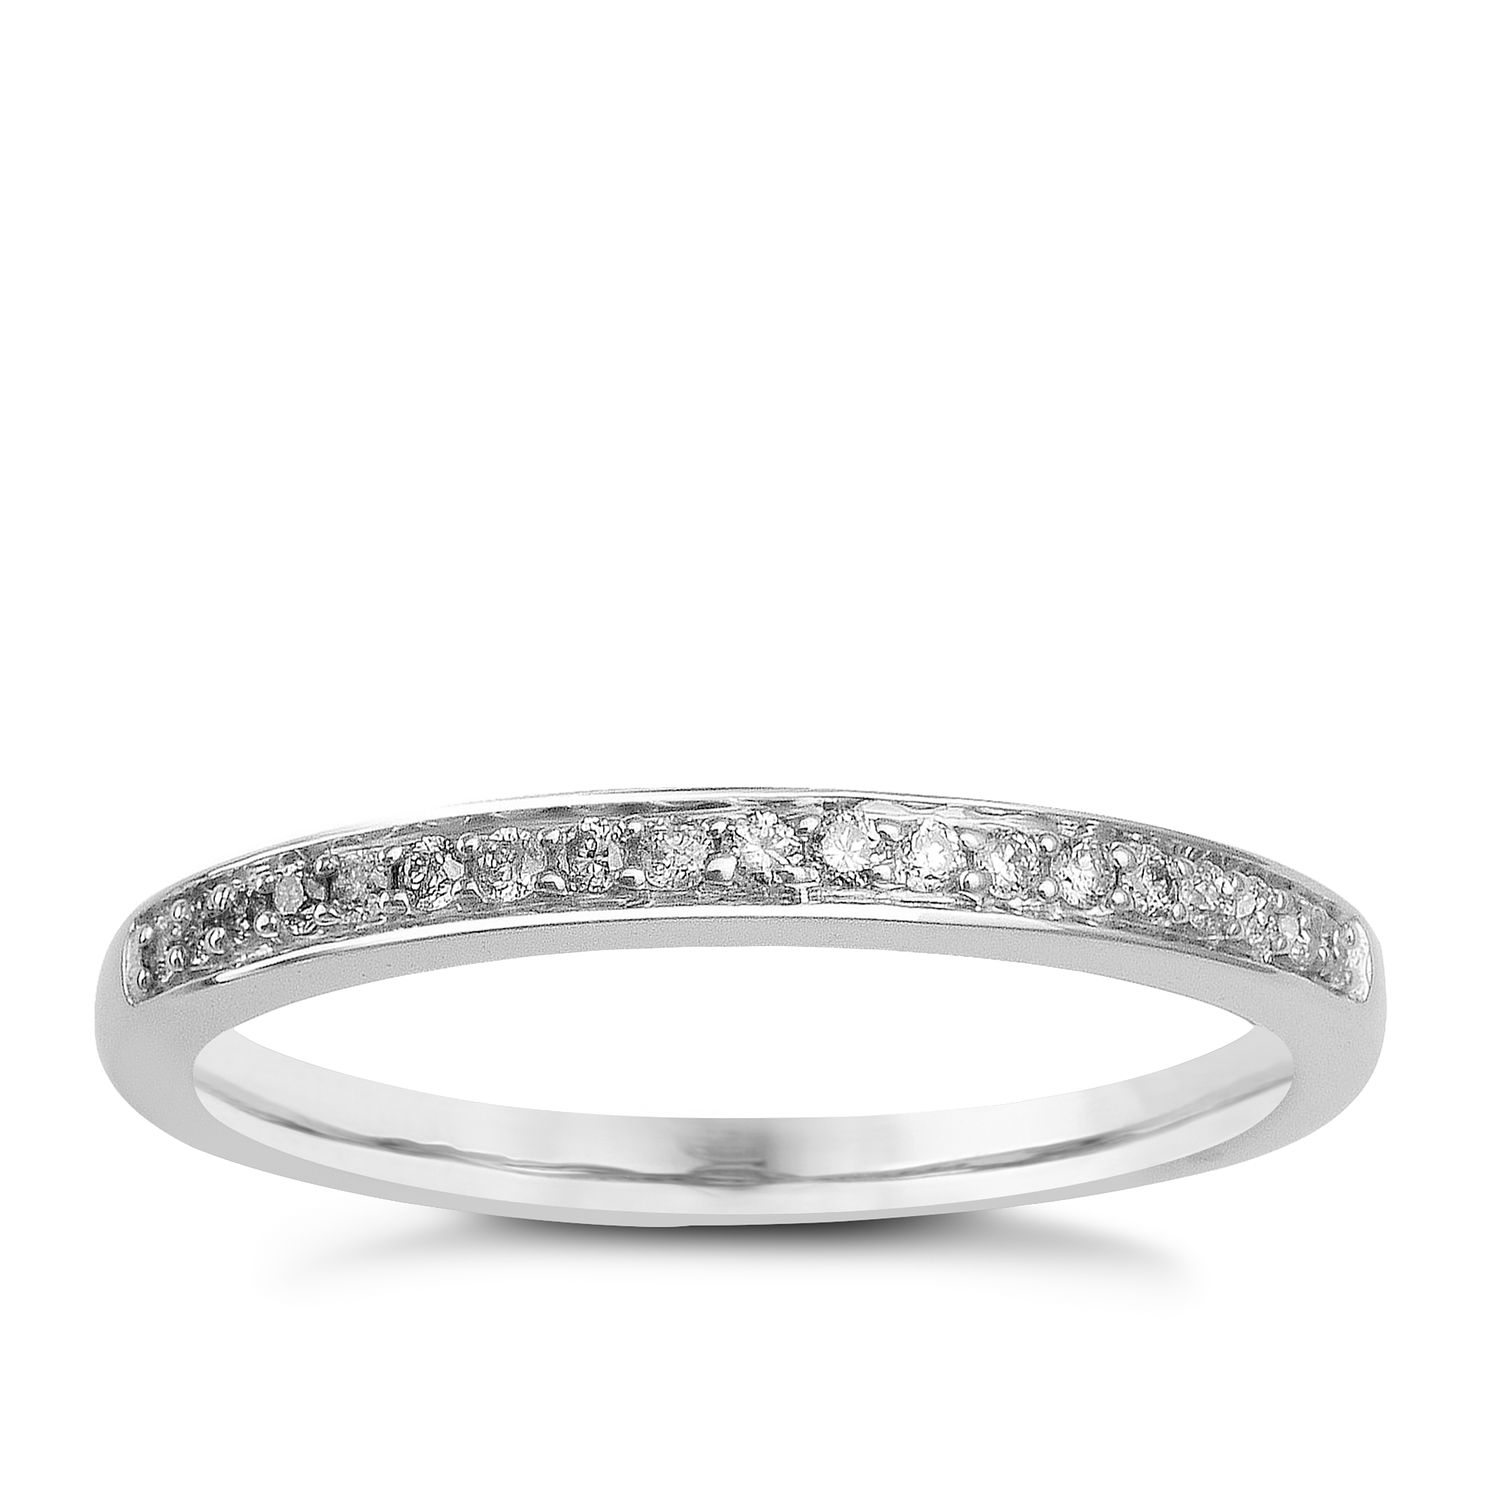 Perfect Fit 9ct White Gold & Diamond Eternity Ring - Product number 9984488